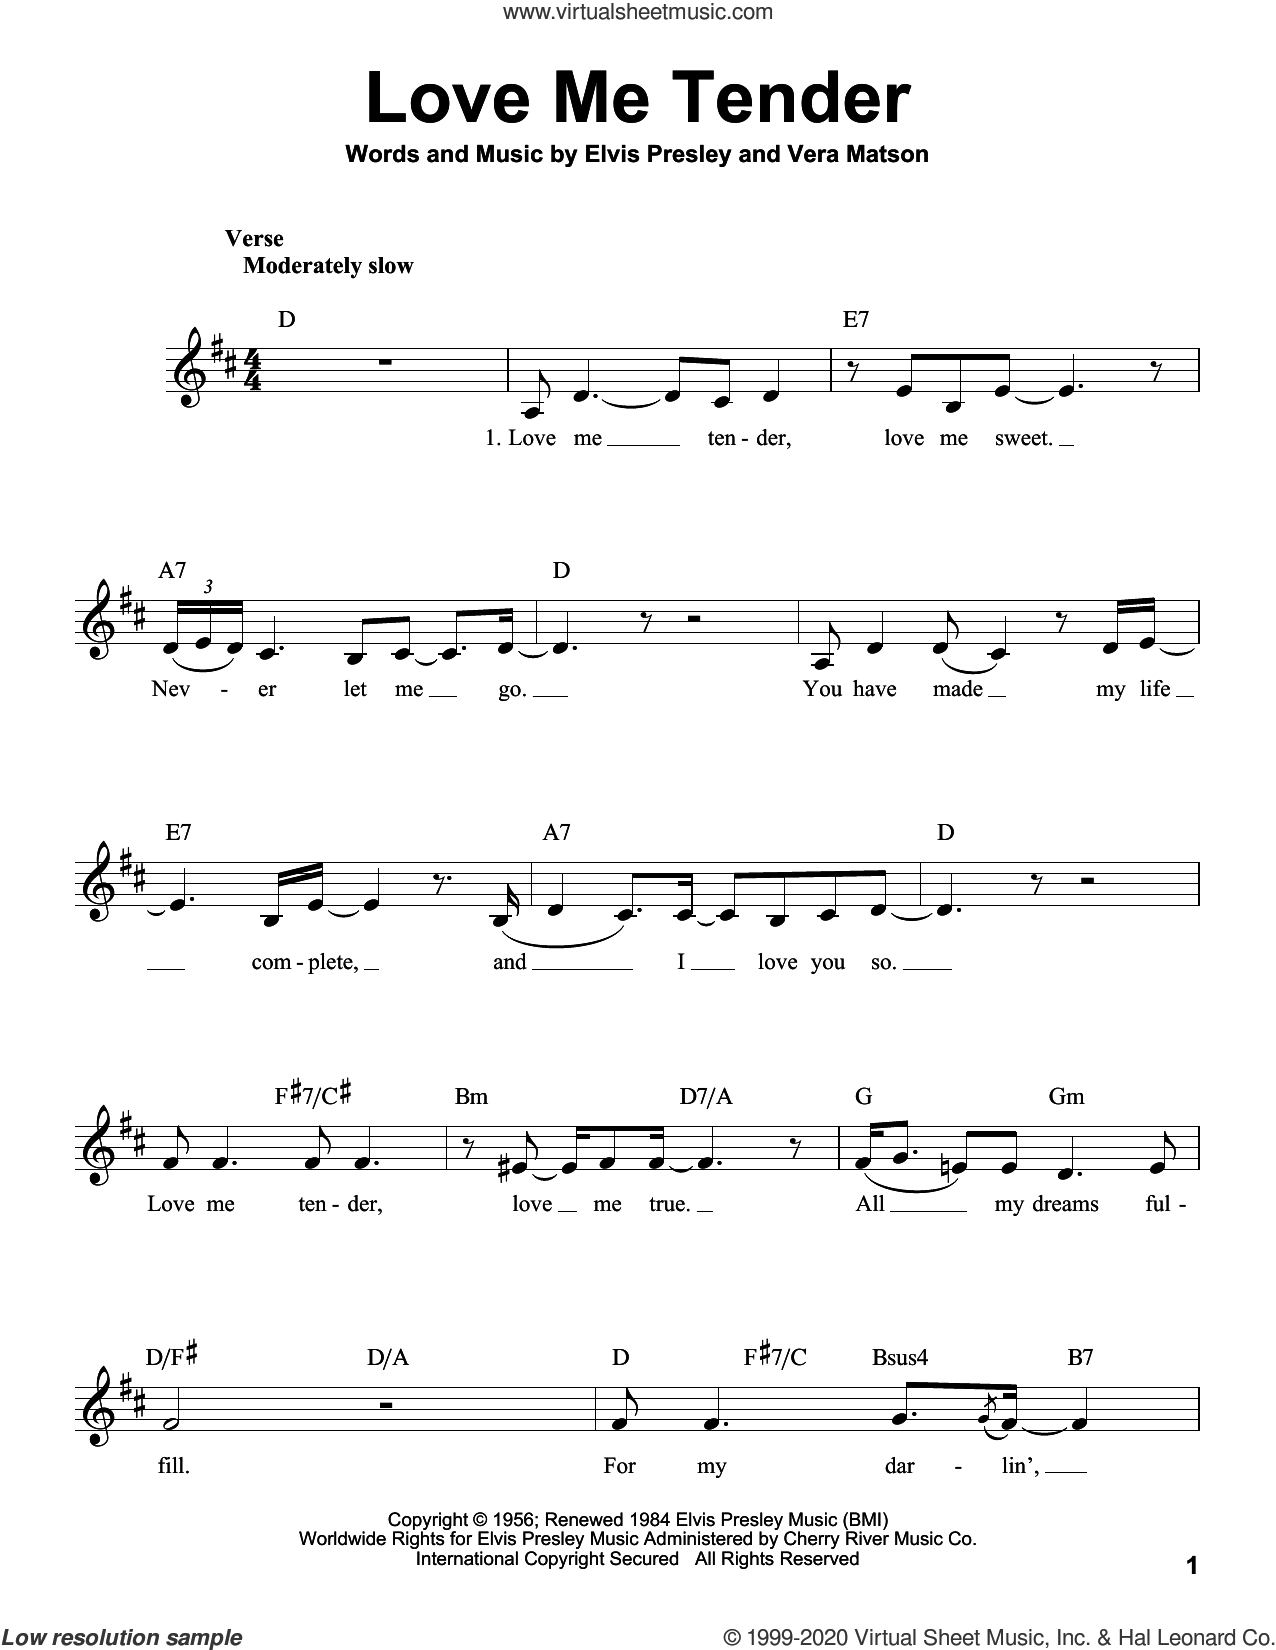 Love Me Tender sheet music for voice solo by Elvis Presley and Vera Matson, intermediate skill level